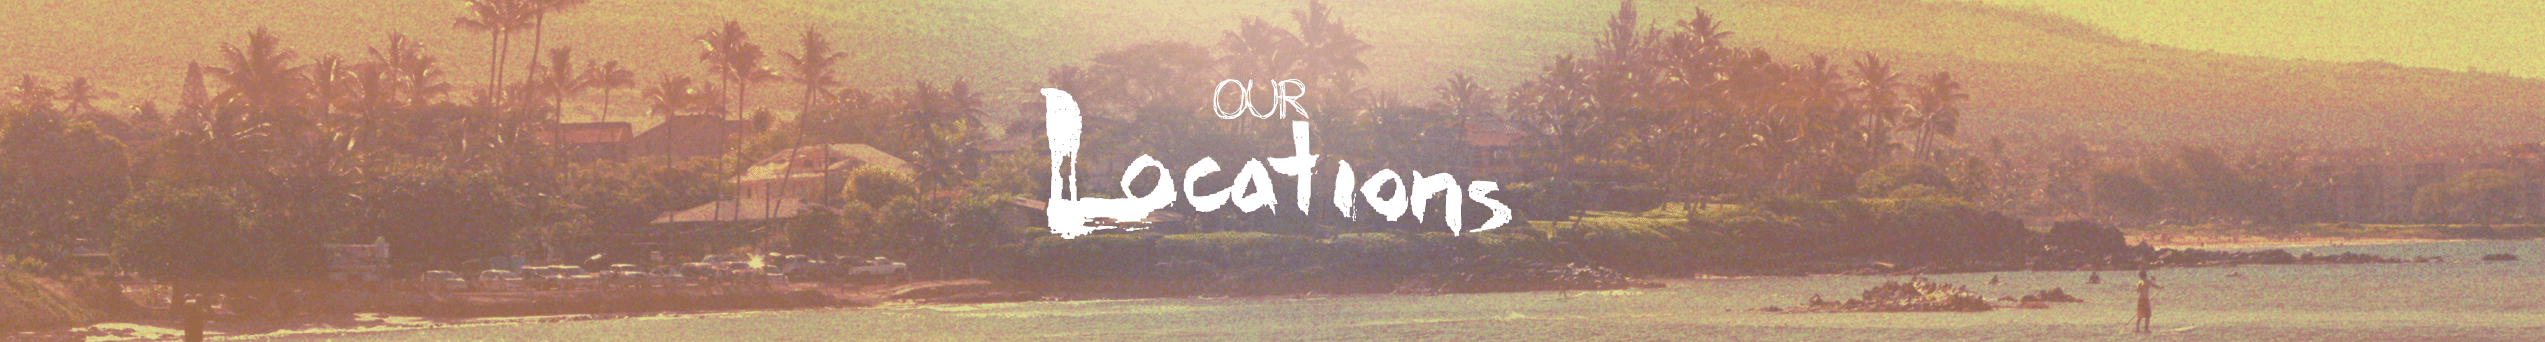 header-locations